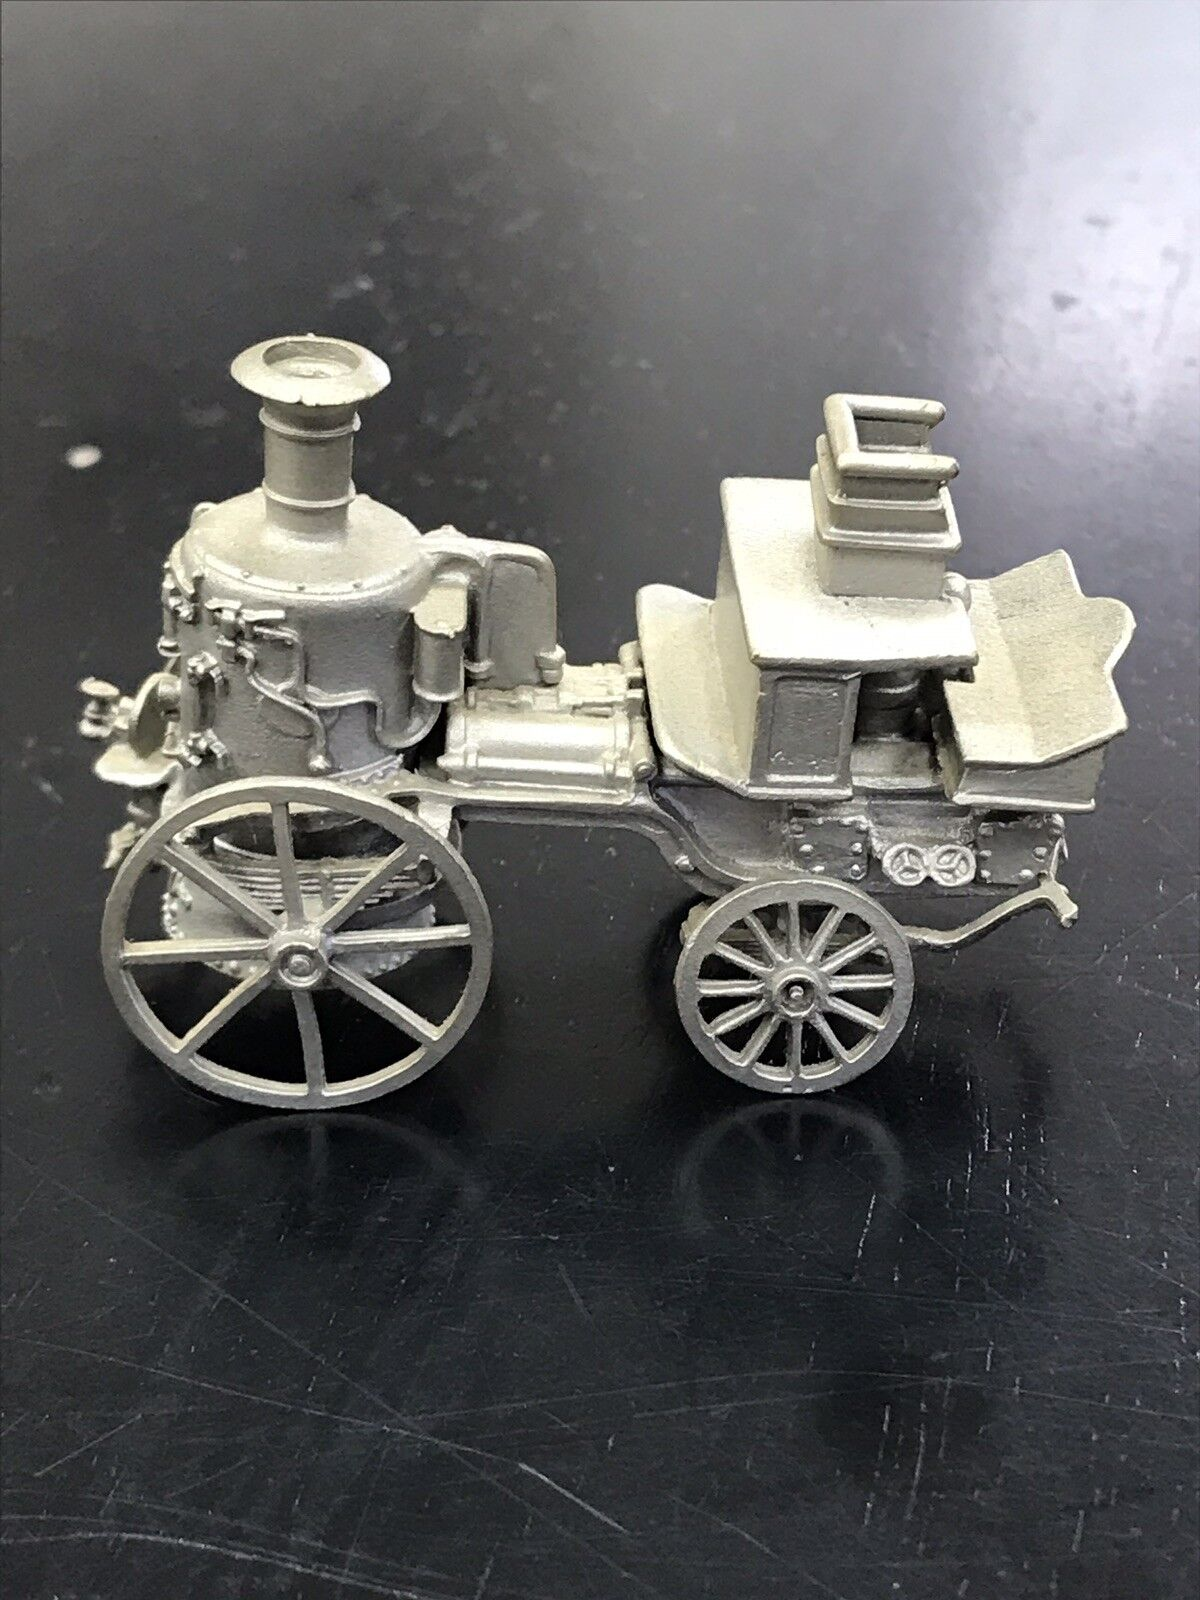 Franklin Mint Pewter Fire Engines of World Merryweather Horse-Drawn Sutherland